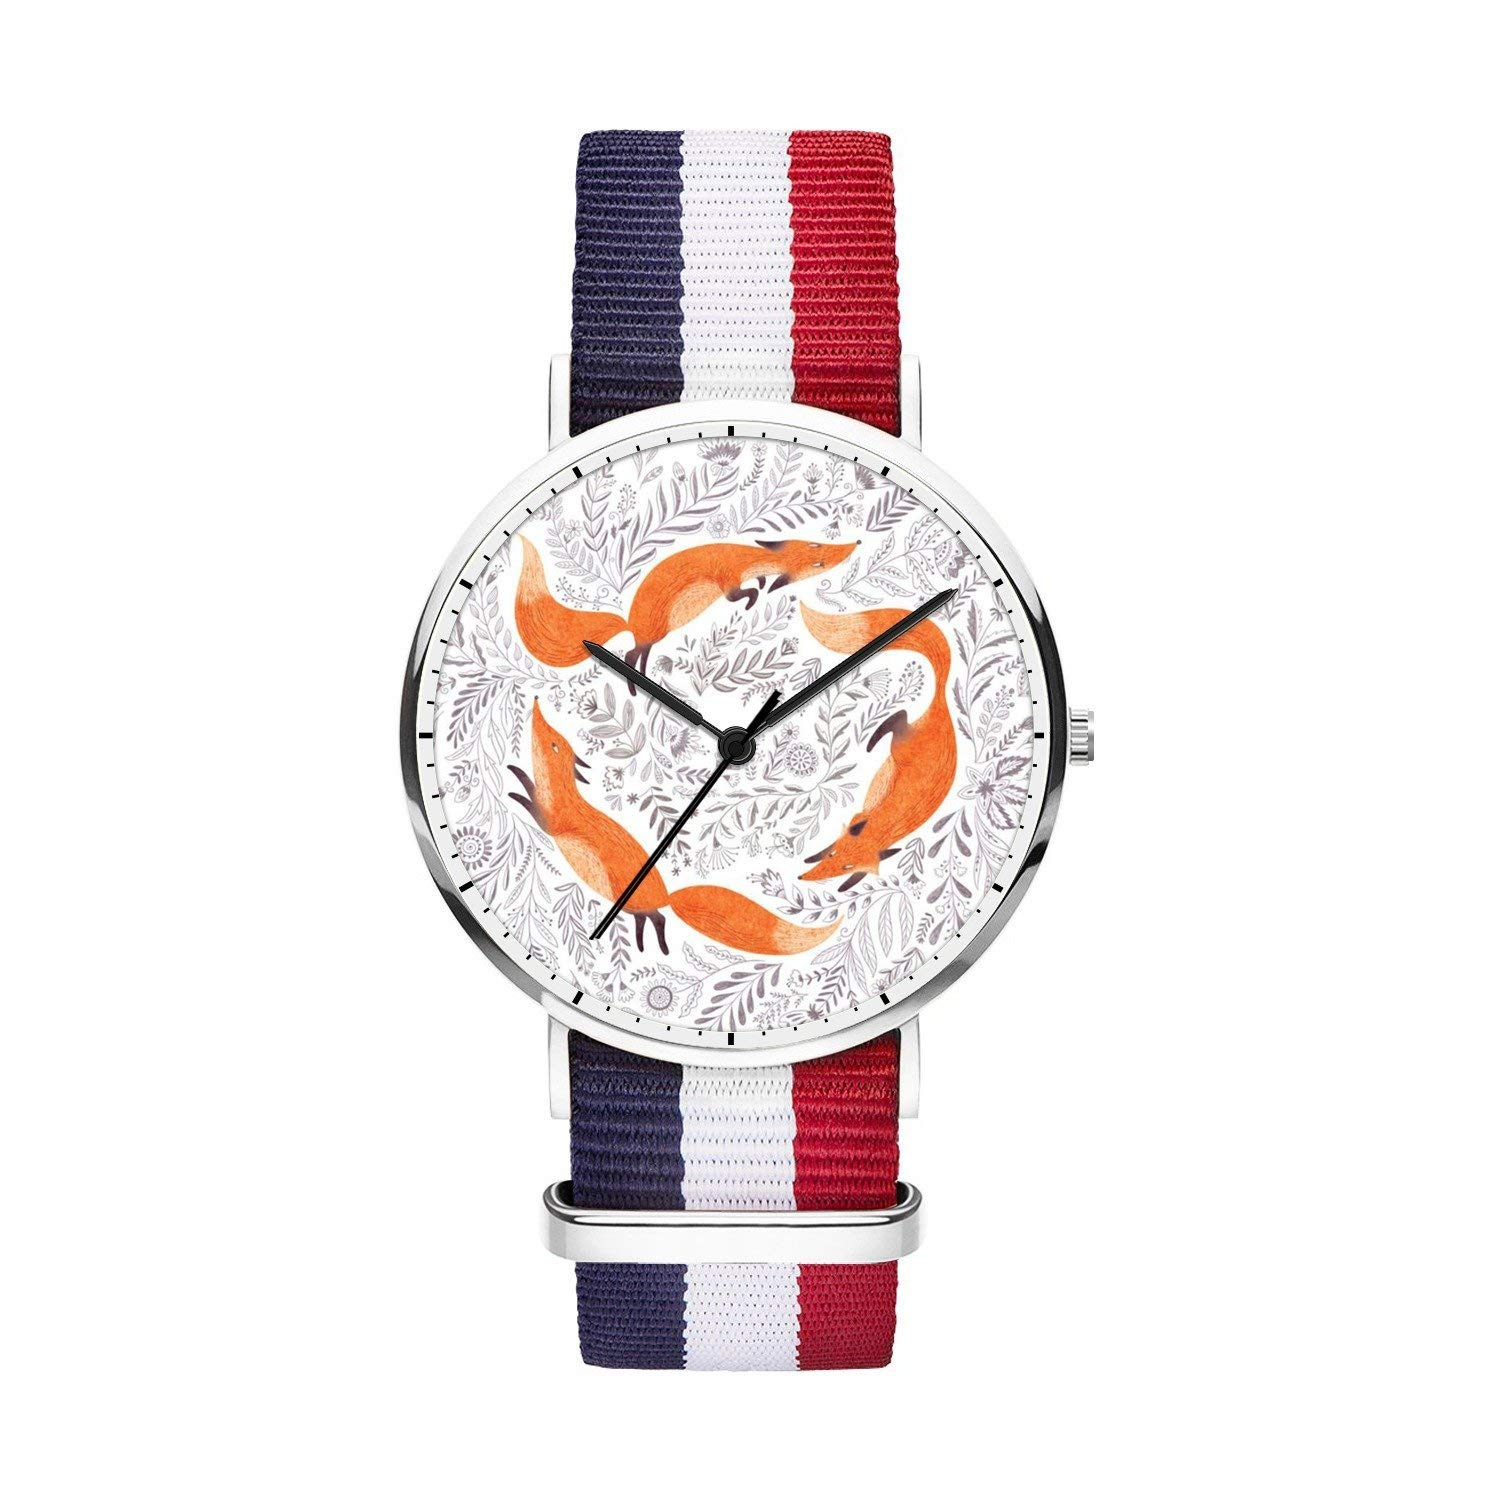 FELOOWSE Girls Watches, Women Watches, Sliver Slim Minimalist Imported Japanese Quartz Practical Waterproof Unique Personalized Youth Fashion Design Cute Watches for Women.- Fox